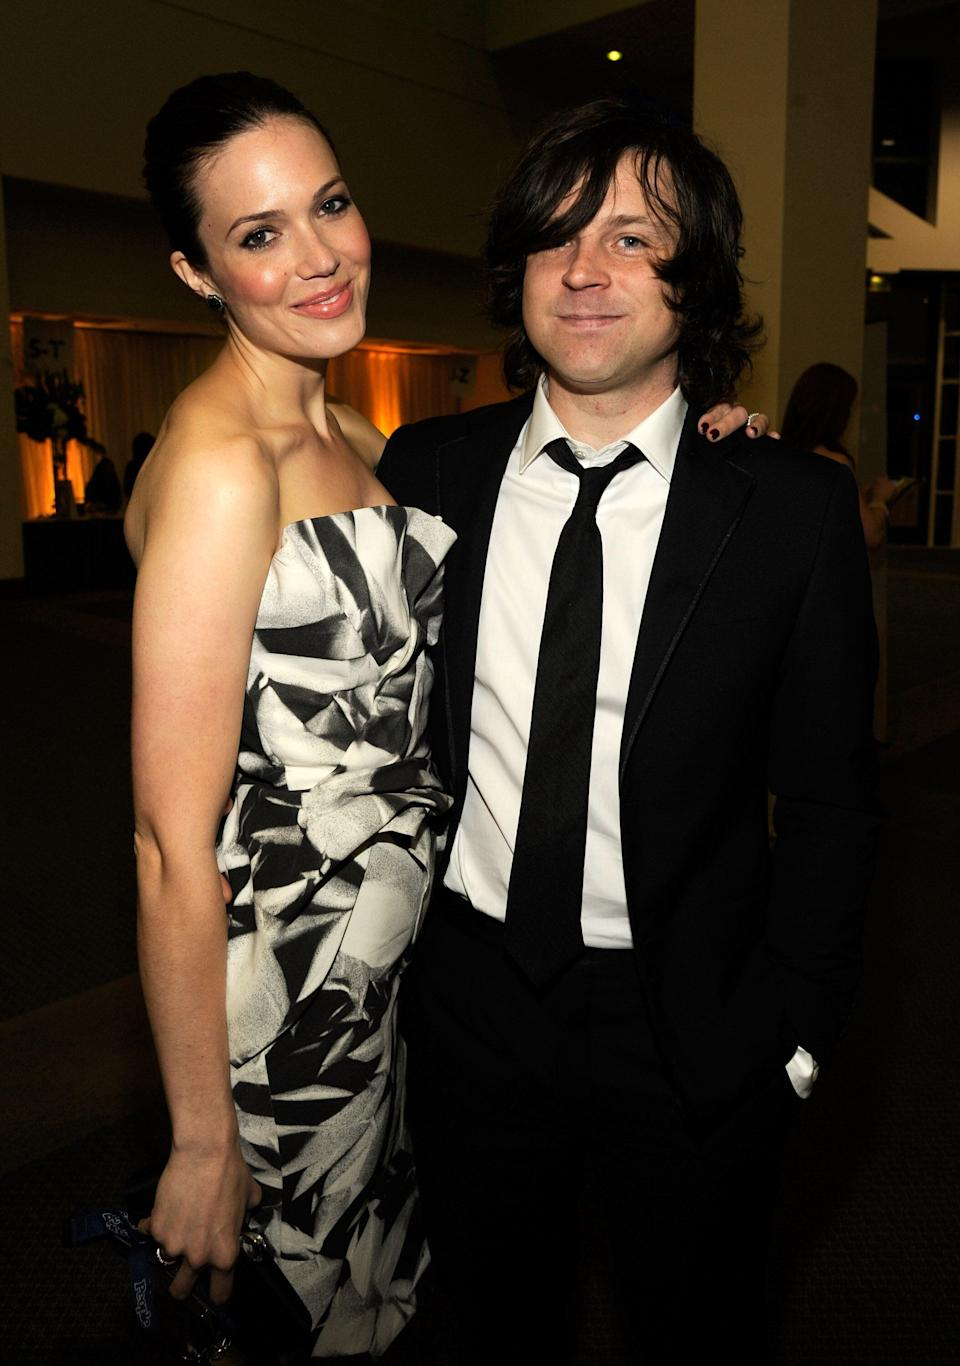 Mandy Moore and Ryan Adams, then a married couple, in 2012. (Photo: Kevin Mazur via Getty Images)